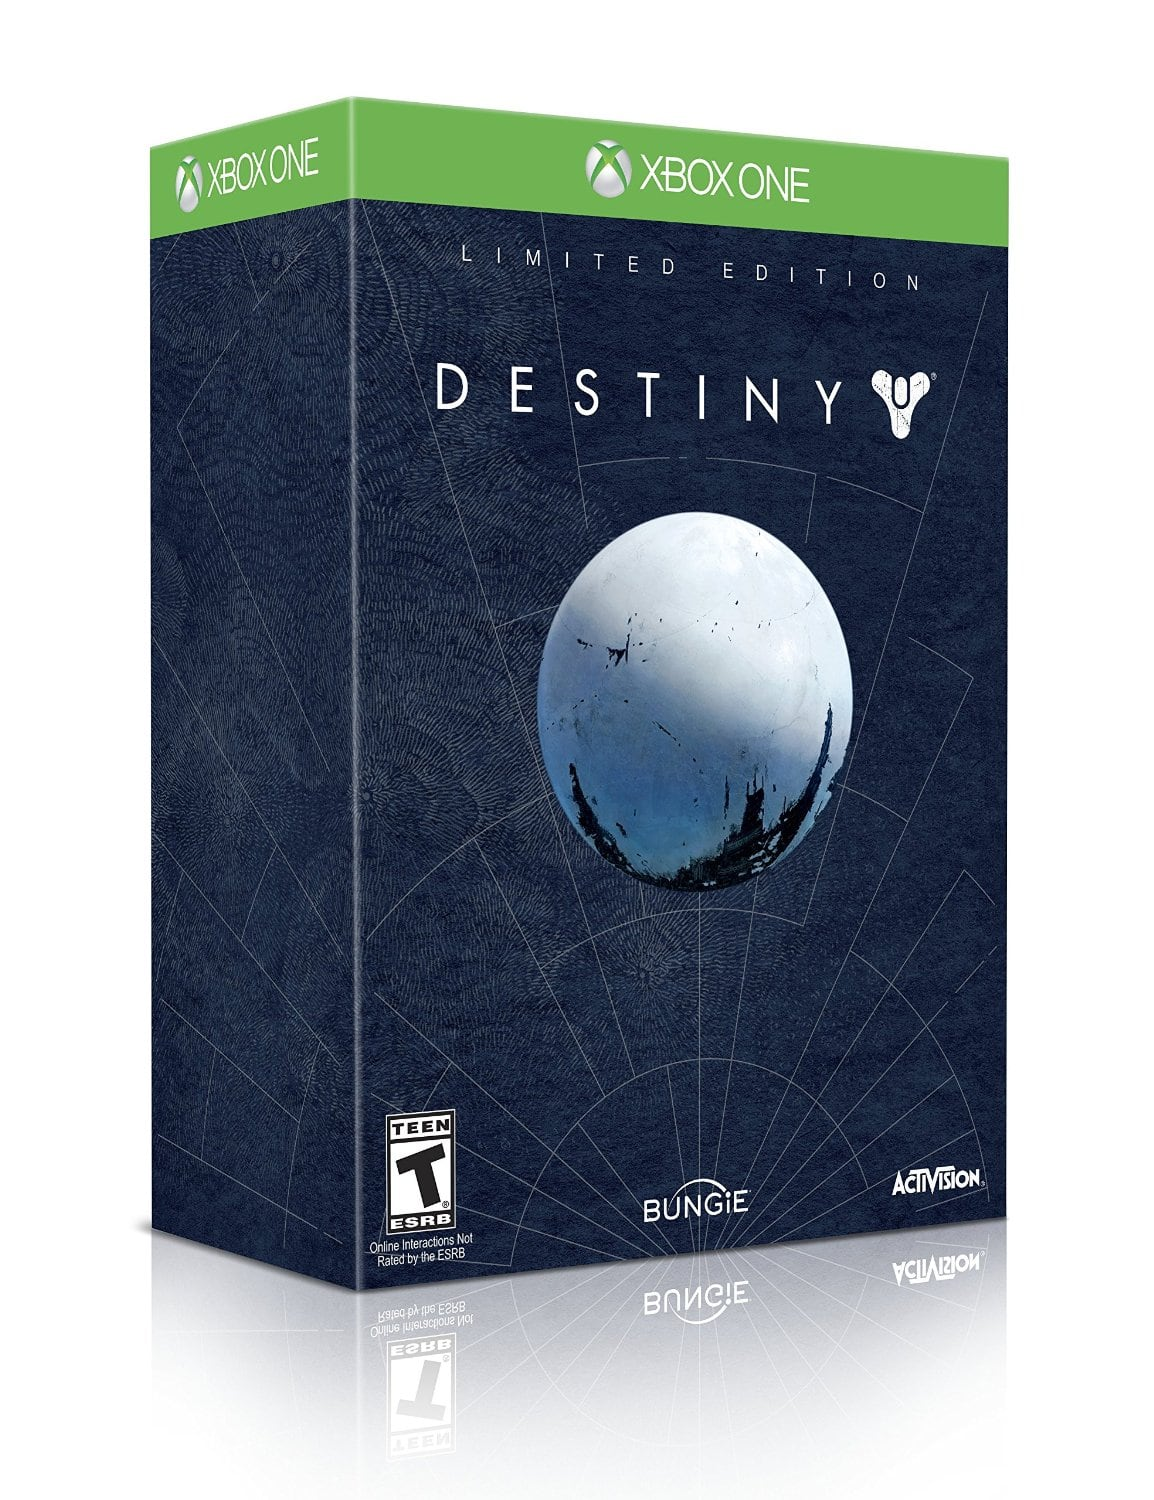 Destiny Limited Edition PS4/XboxOne available again for pre-order at Amazon.com for $99.99